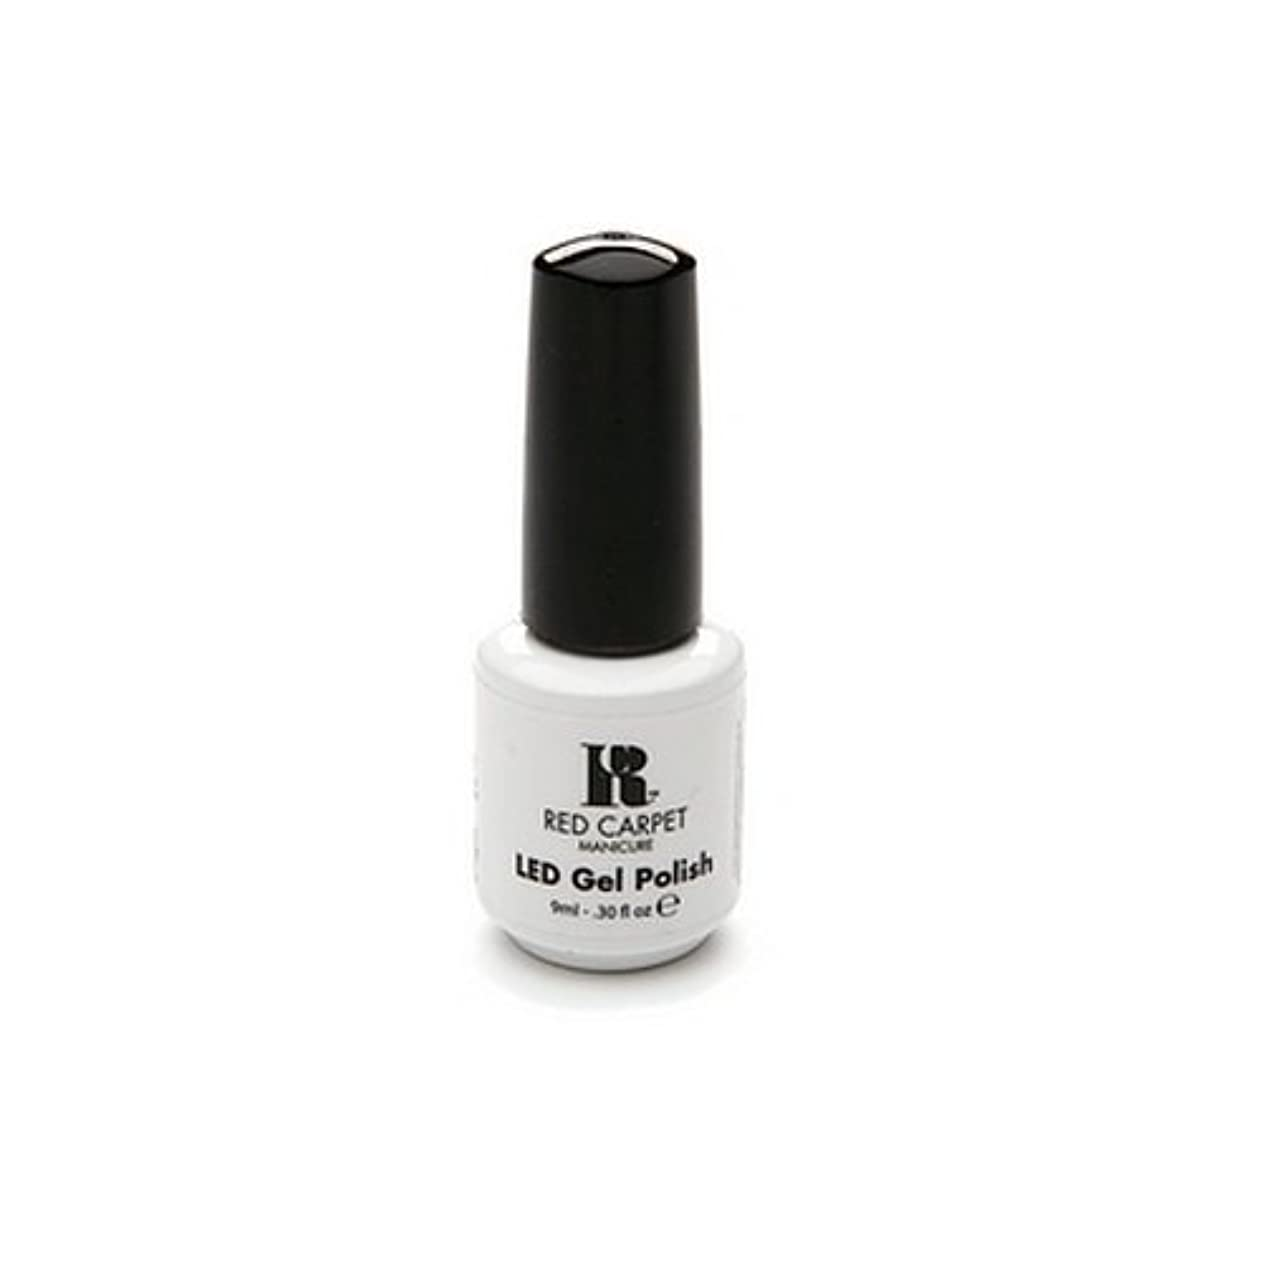 限られた保育園手のひらRed Carpet Manicure - LED Nail Gel Polish - Iconic Beauty - 0.3oz / 9ml